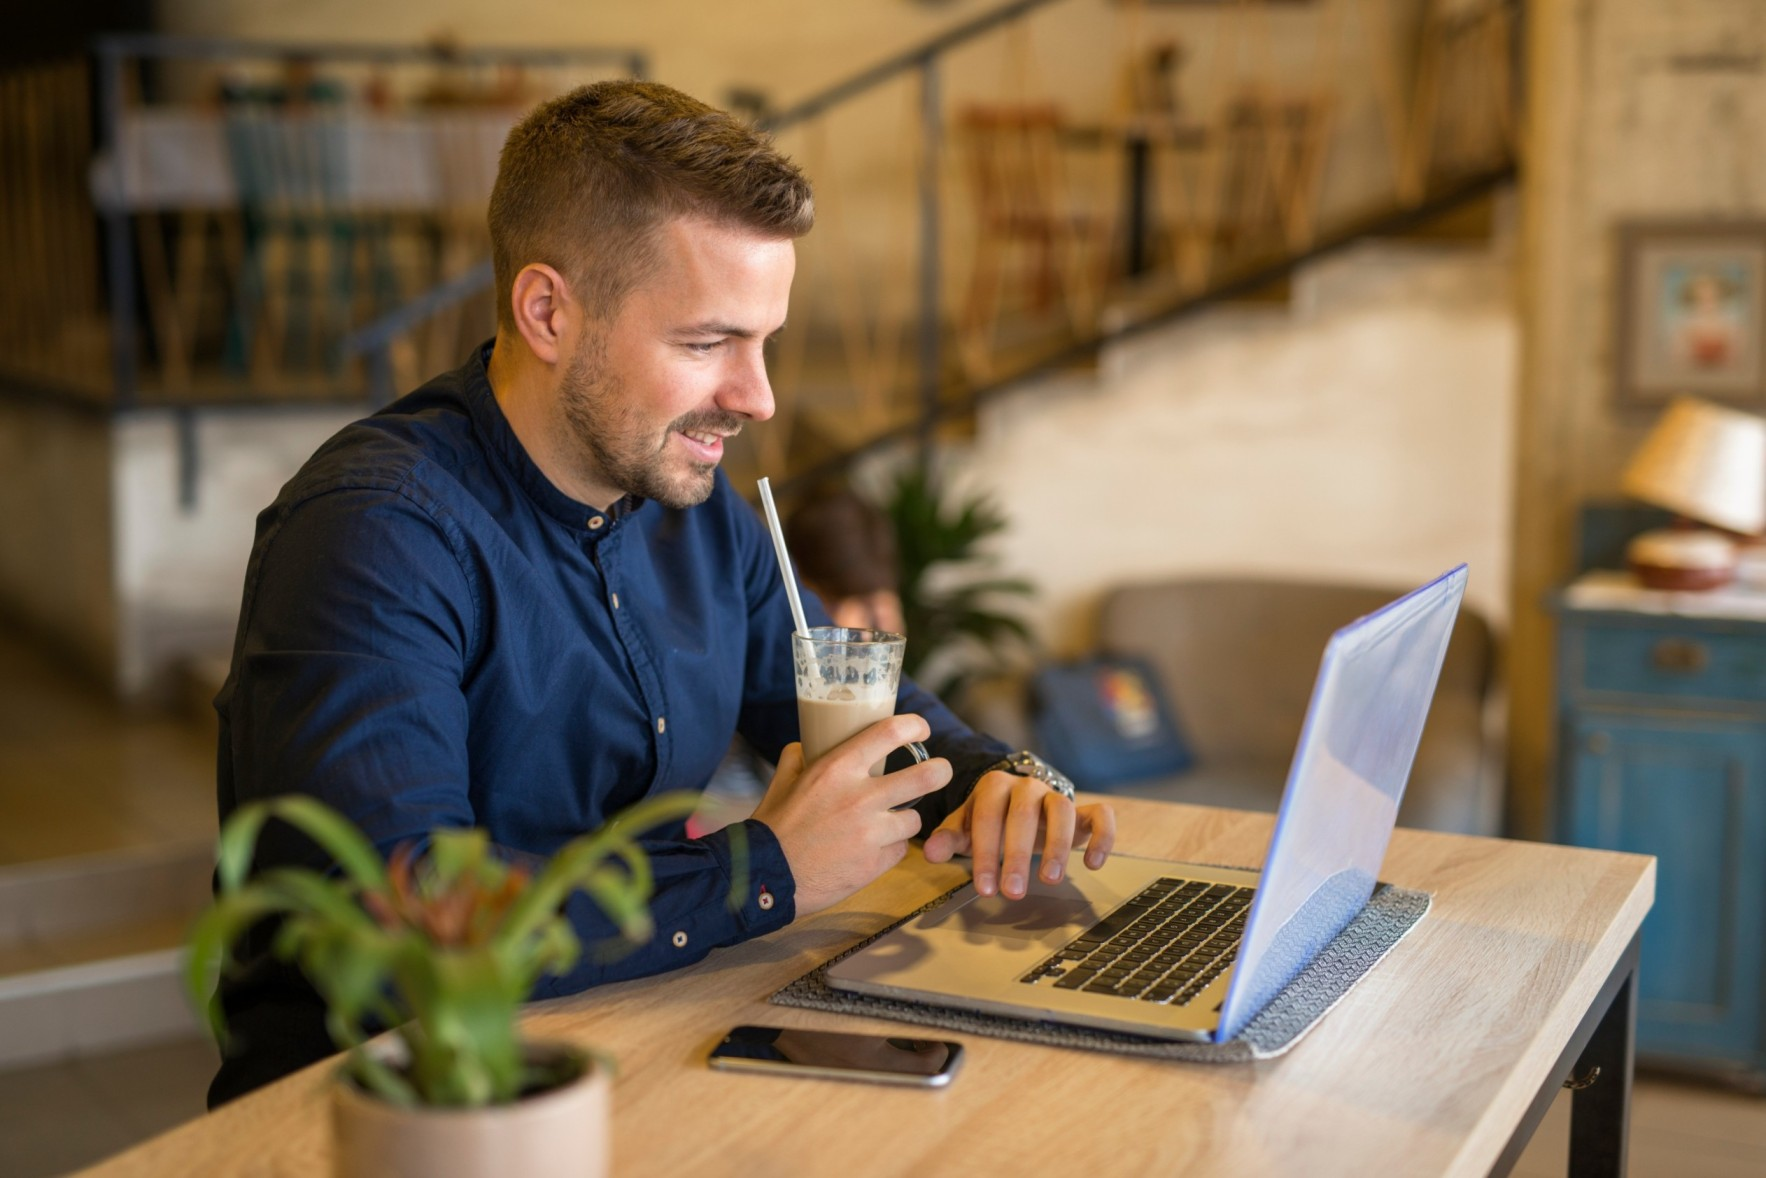 smiling-young-man-working-computer-cozy-cafe-bar-restaurant (1) (1) (1) (1)